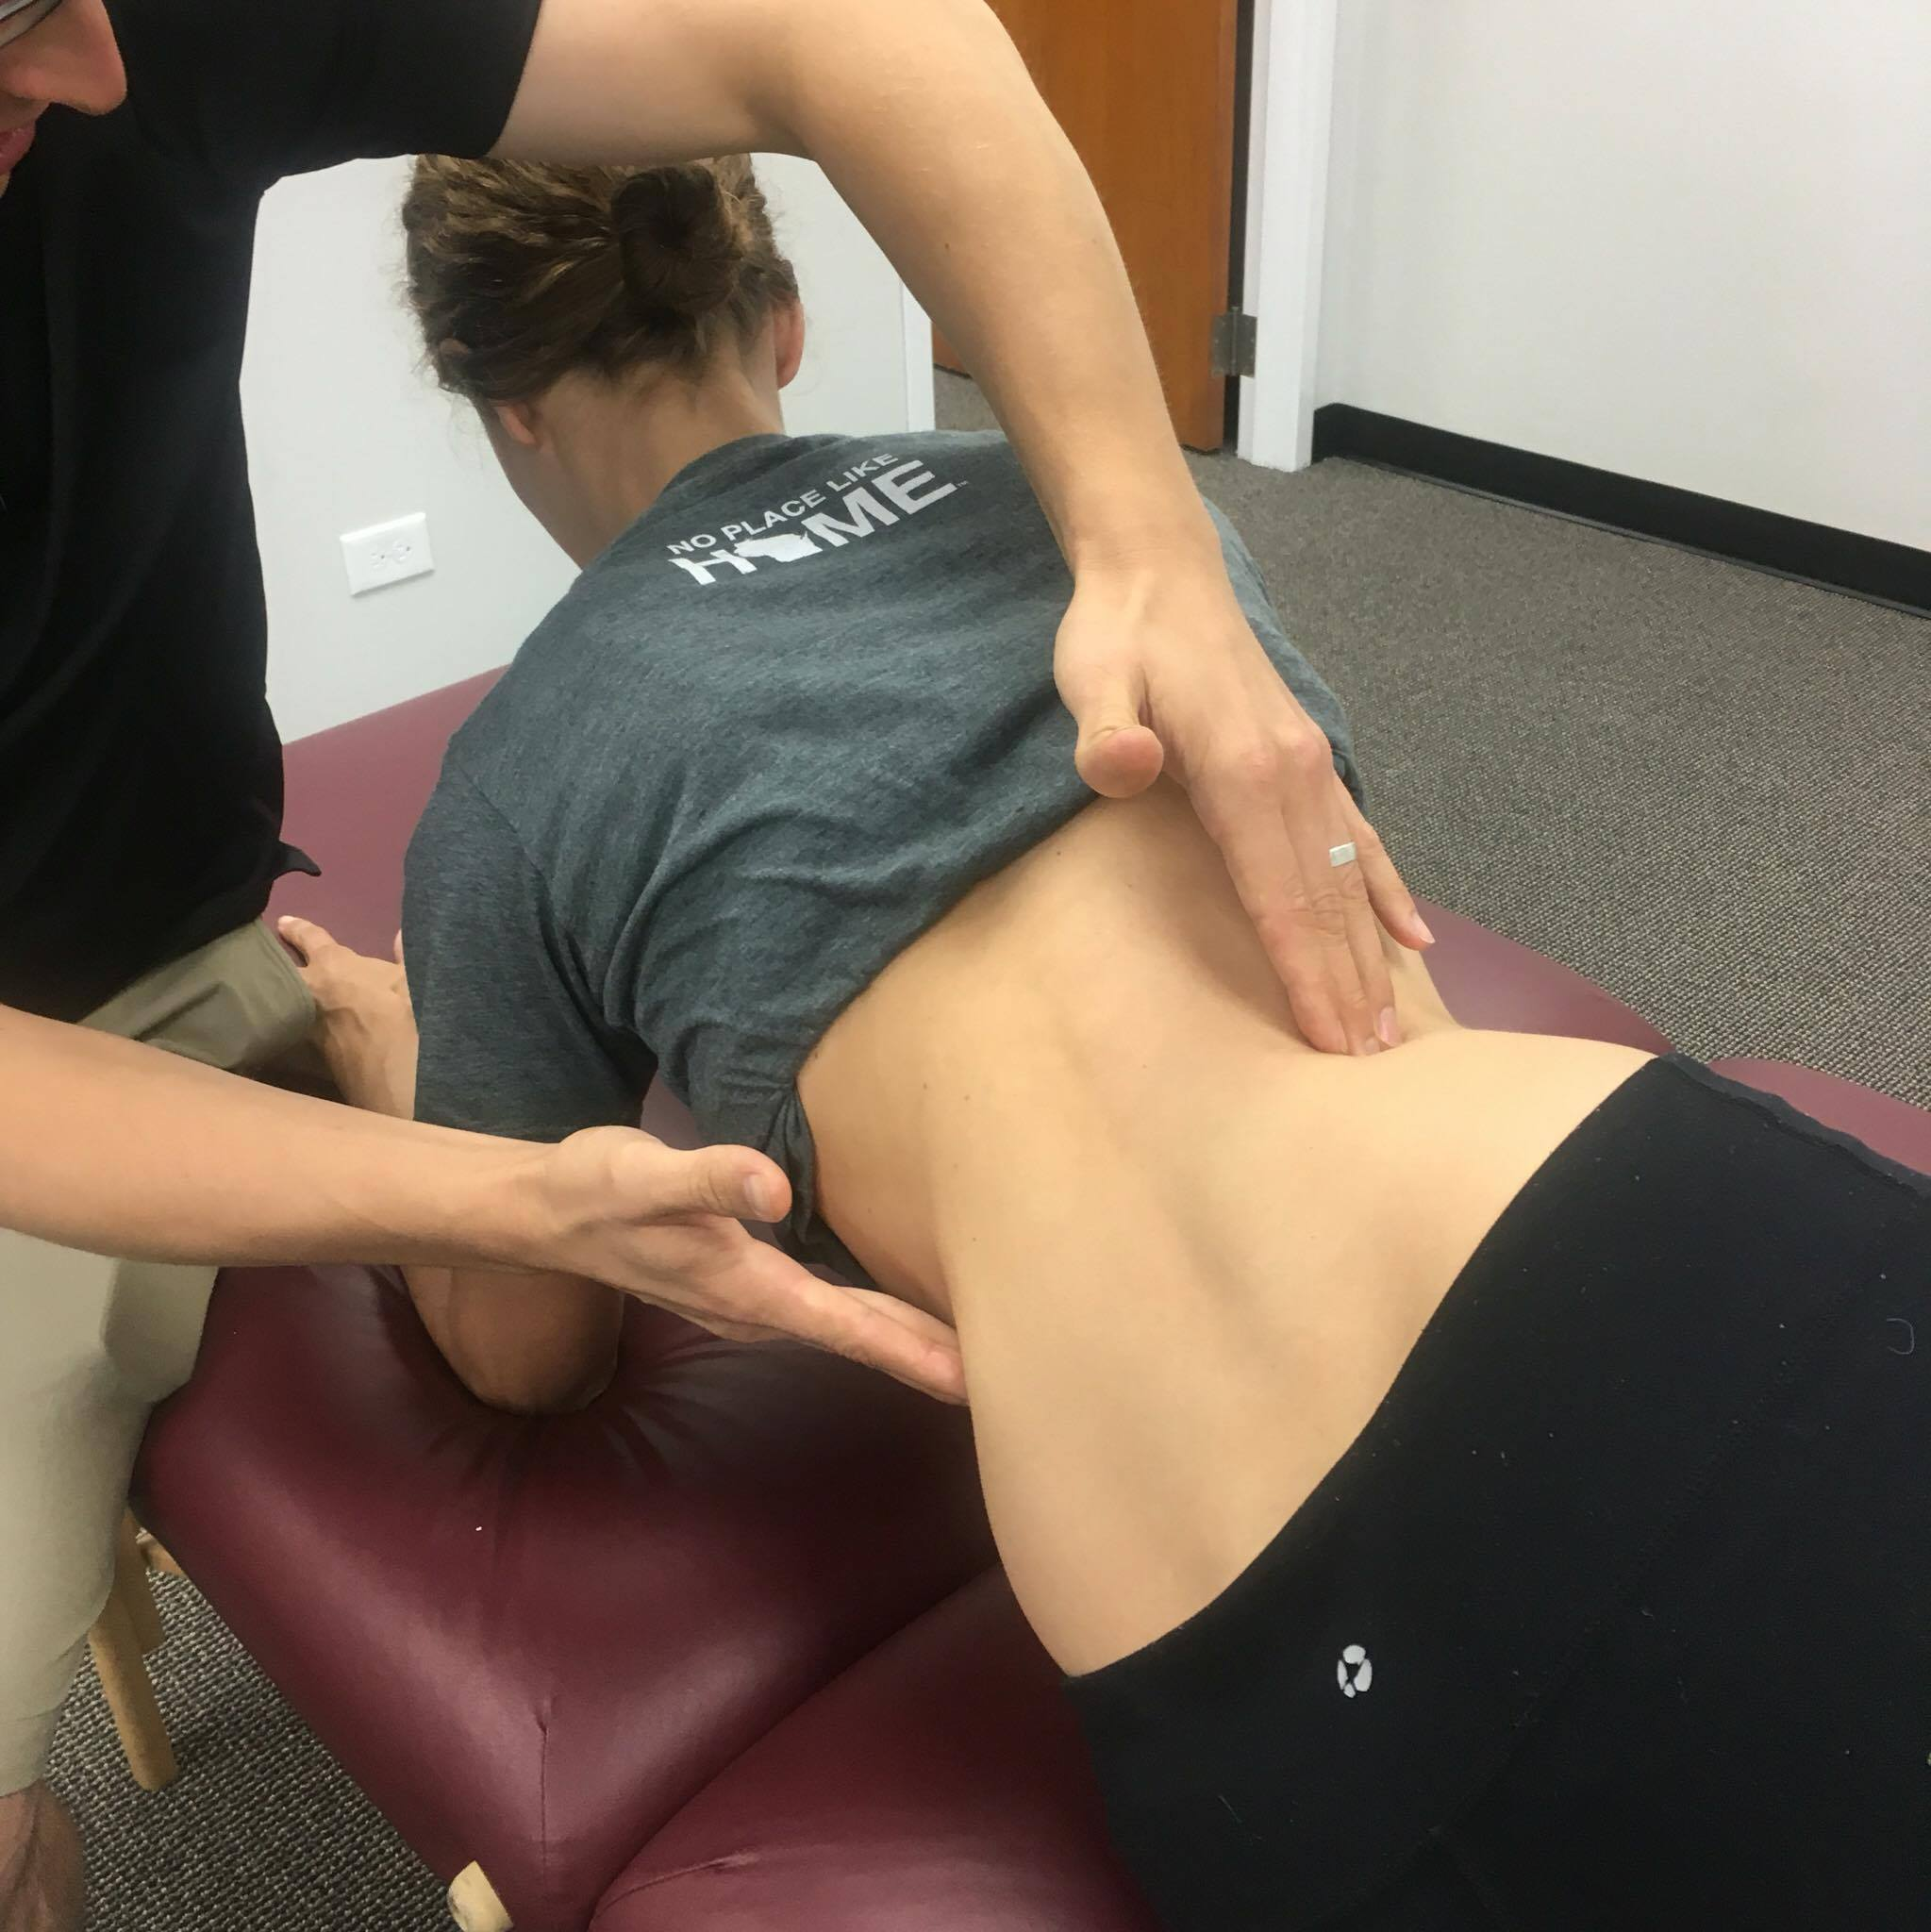 Marcela Safarova working with Dr. Boland to engage appropriate thoracic spine motion while maintaining intra-abdominal pressure.